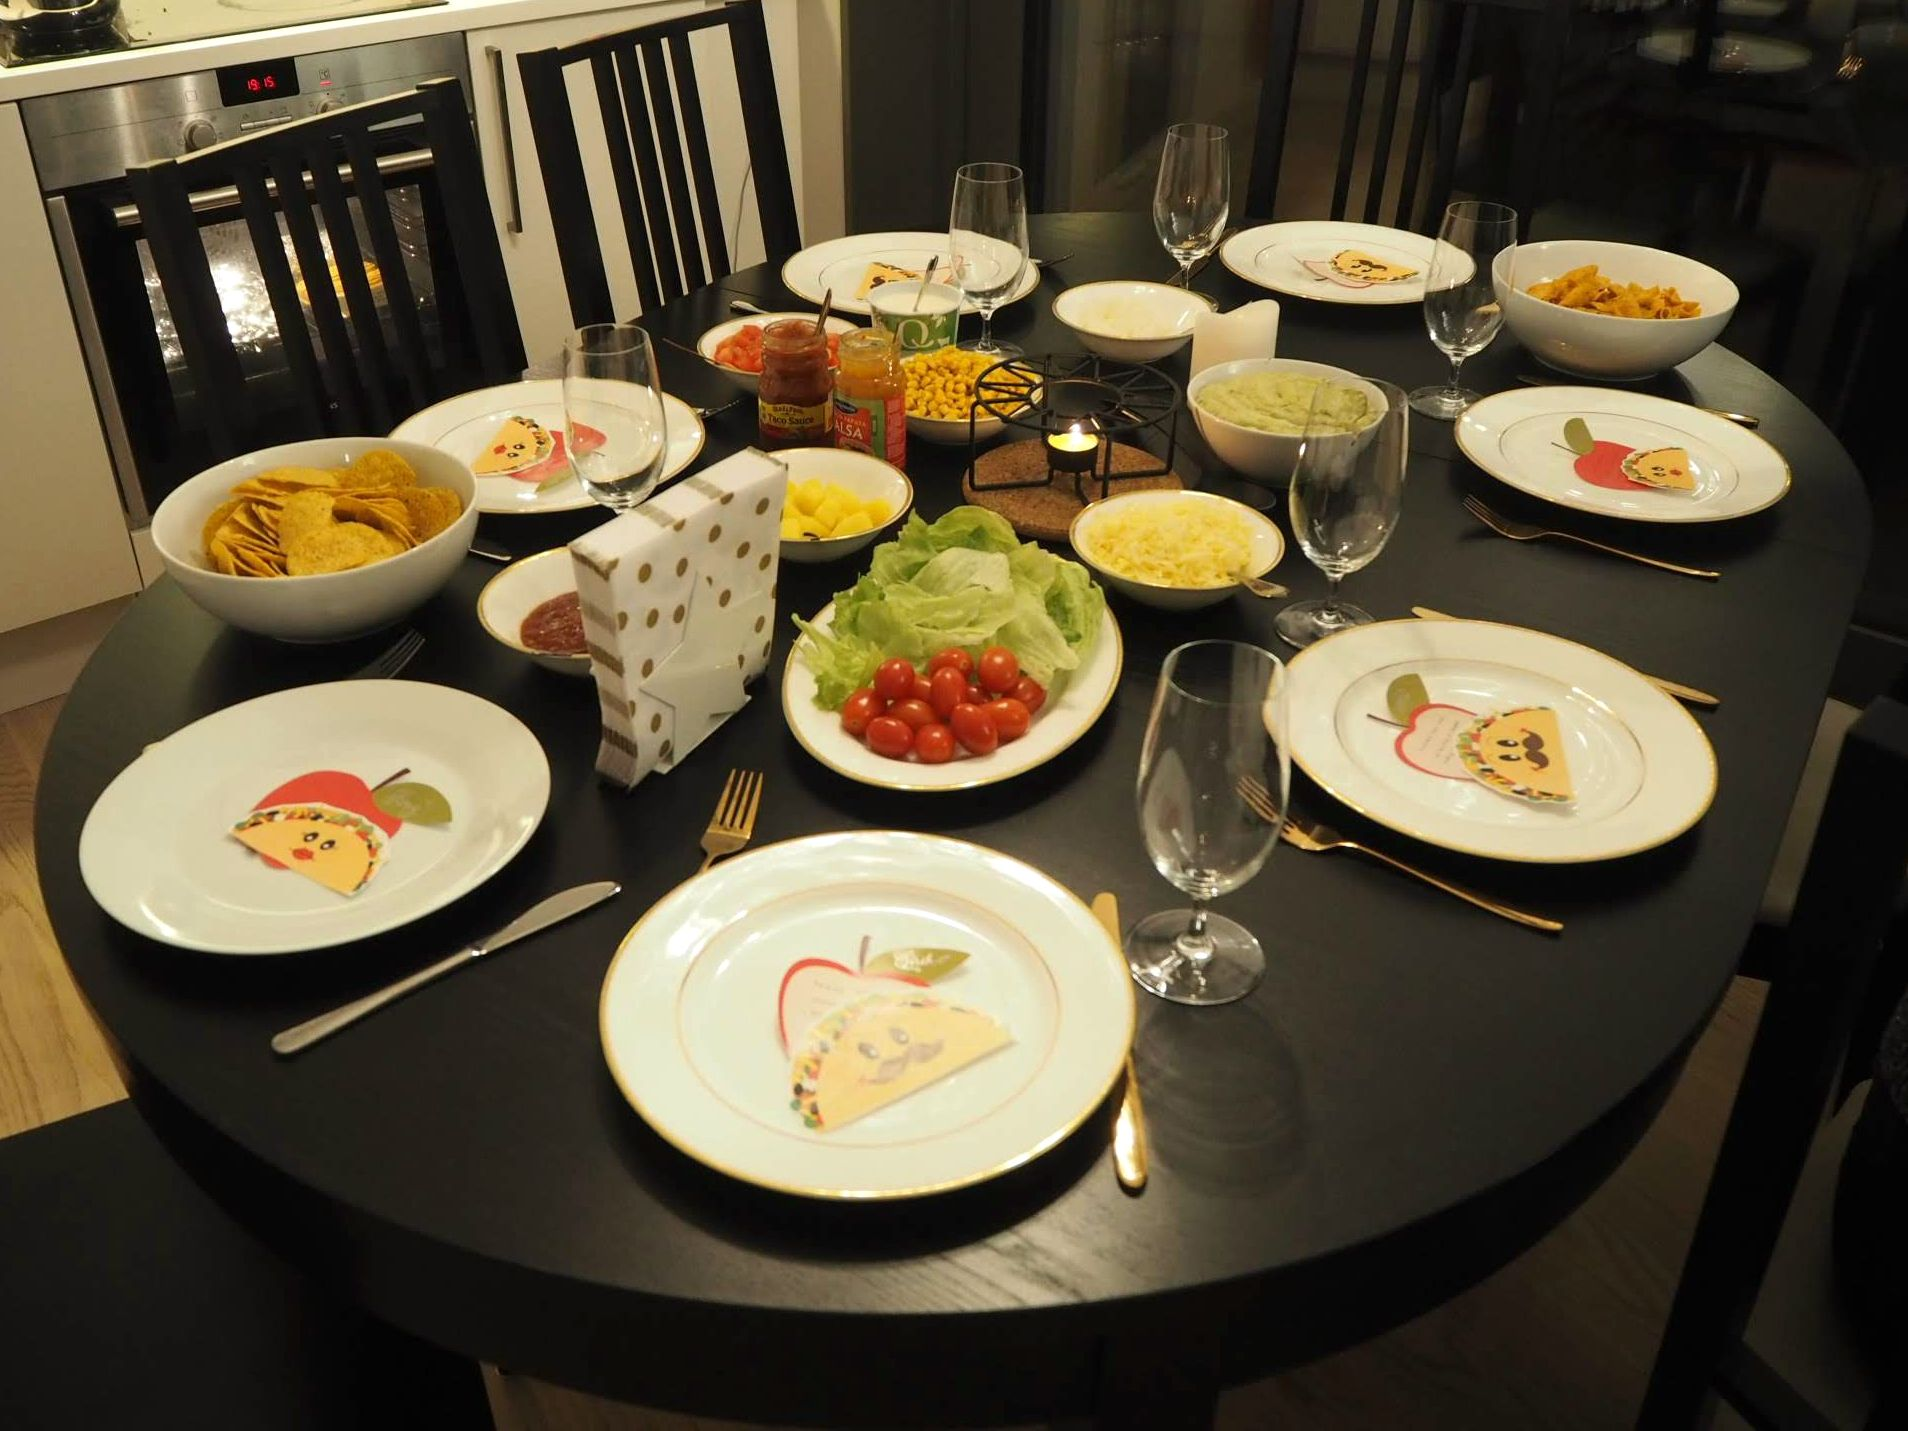 Tacosgiving table setting